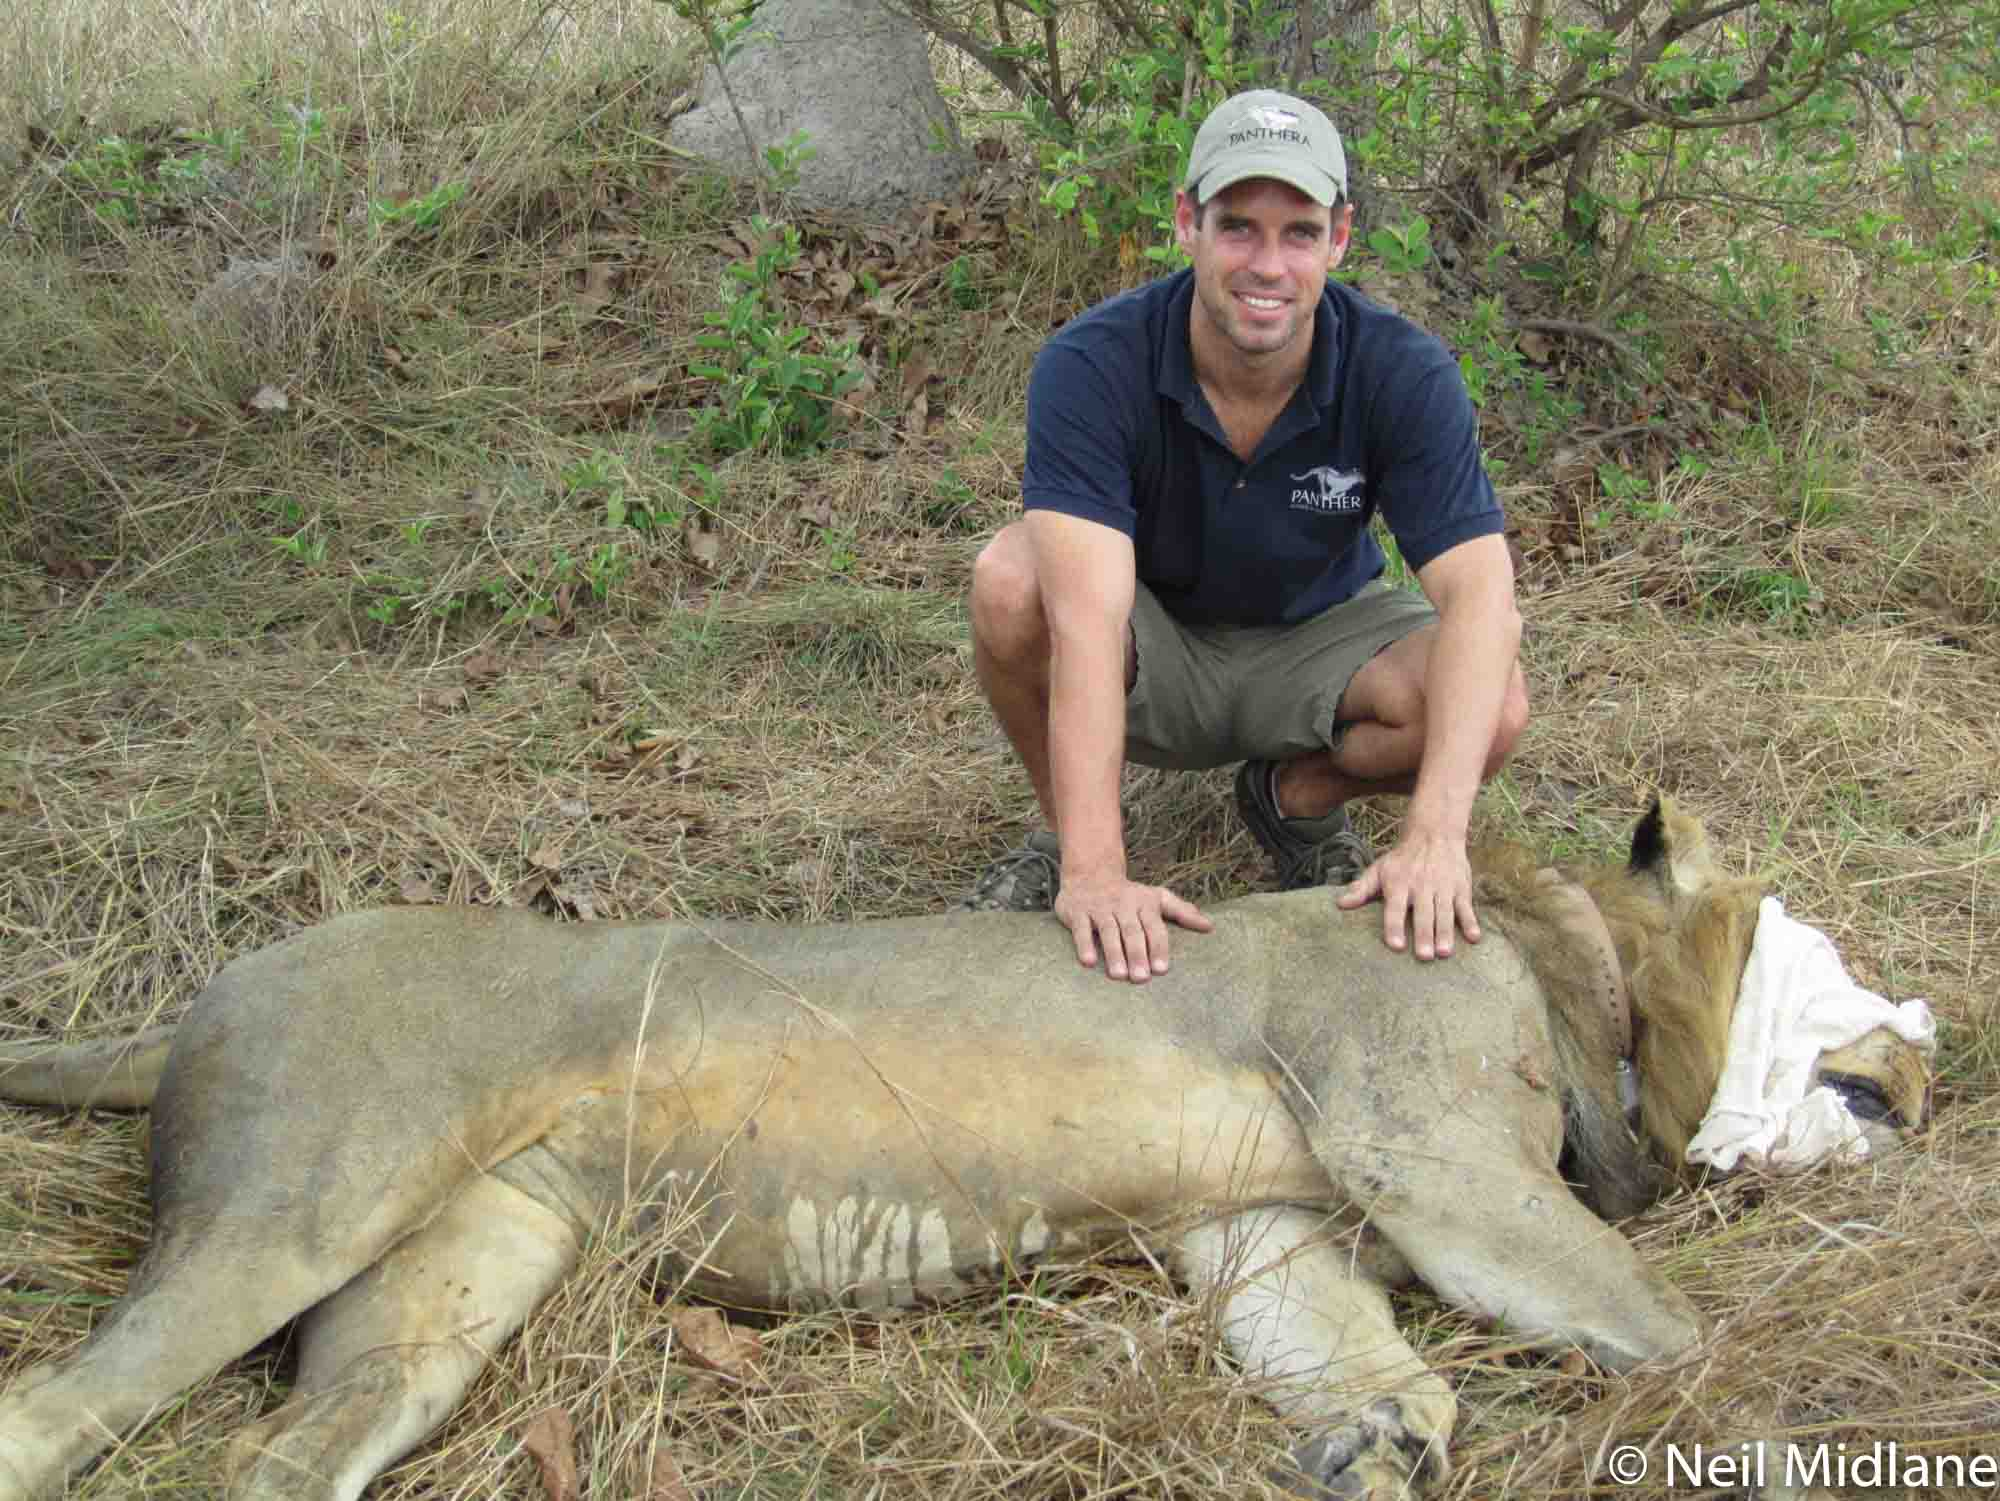 Neil Midlane and collared lion in Kafue.